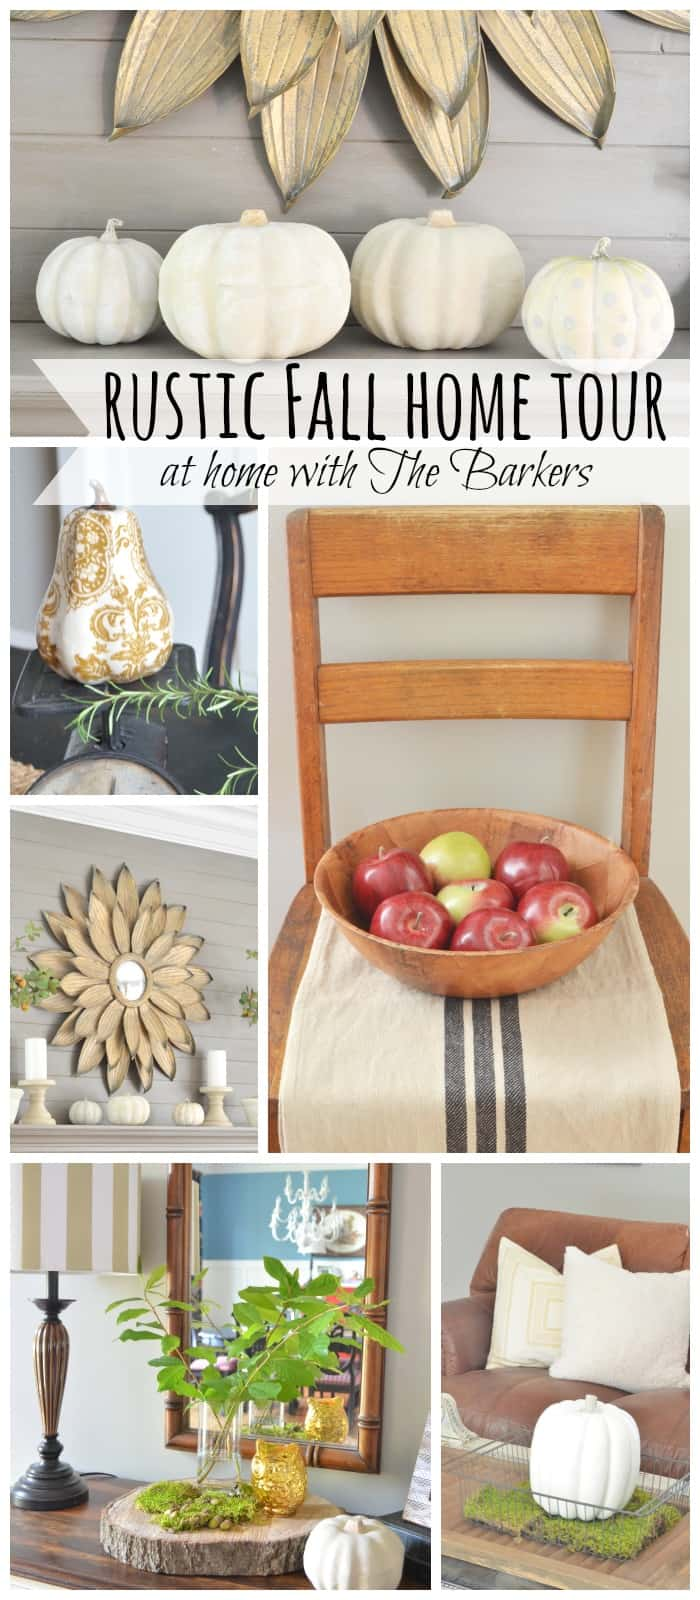 Rustic Fall Home Tour-At Home with The Barkers